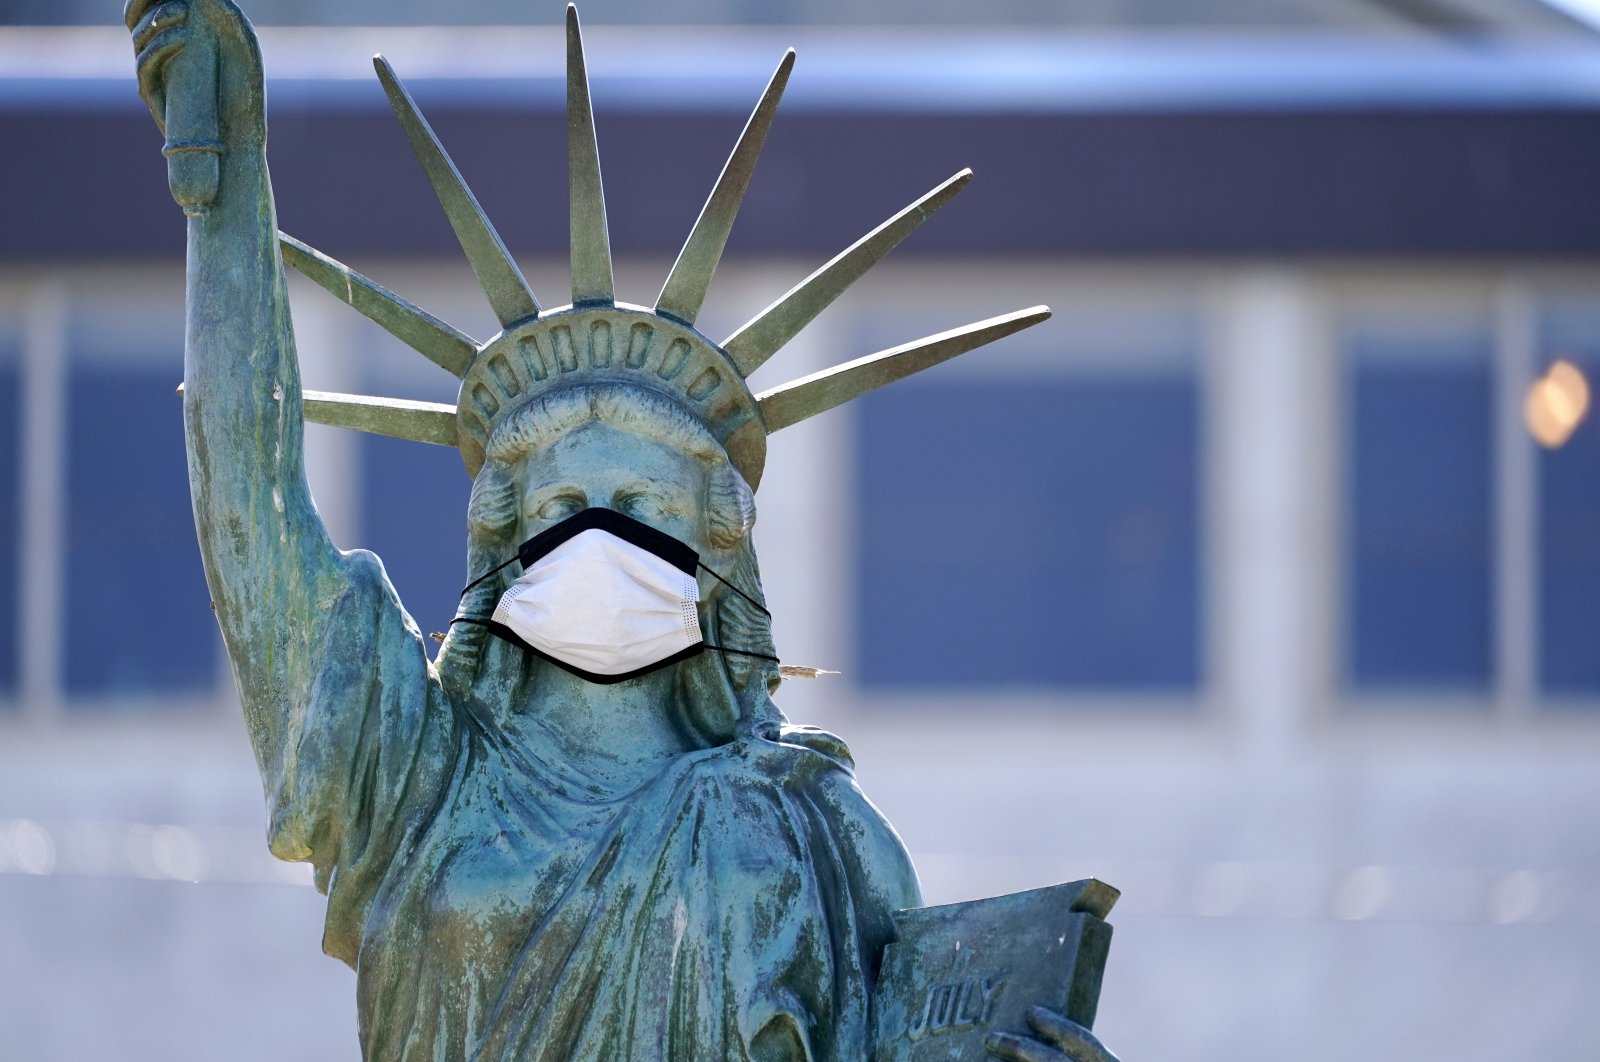 A replica of the Statue of Liberty sports a protective face mask against the coronavirus, in Seattle, Washington, U.S., Aug. 26, 2020. (AP Photo)